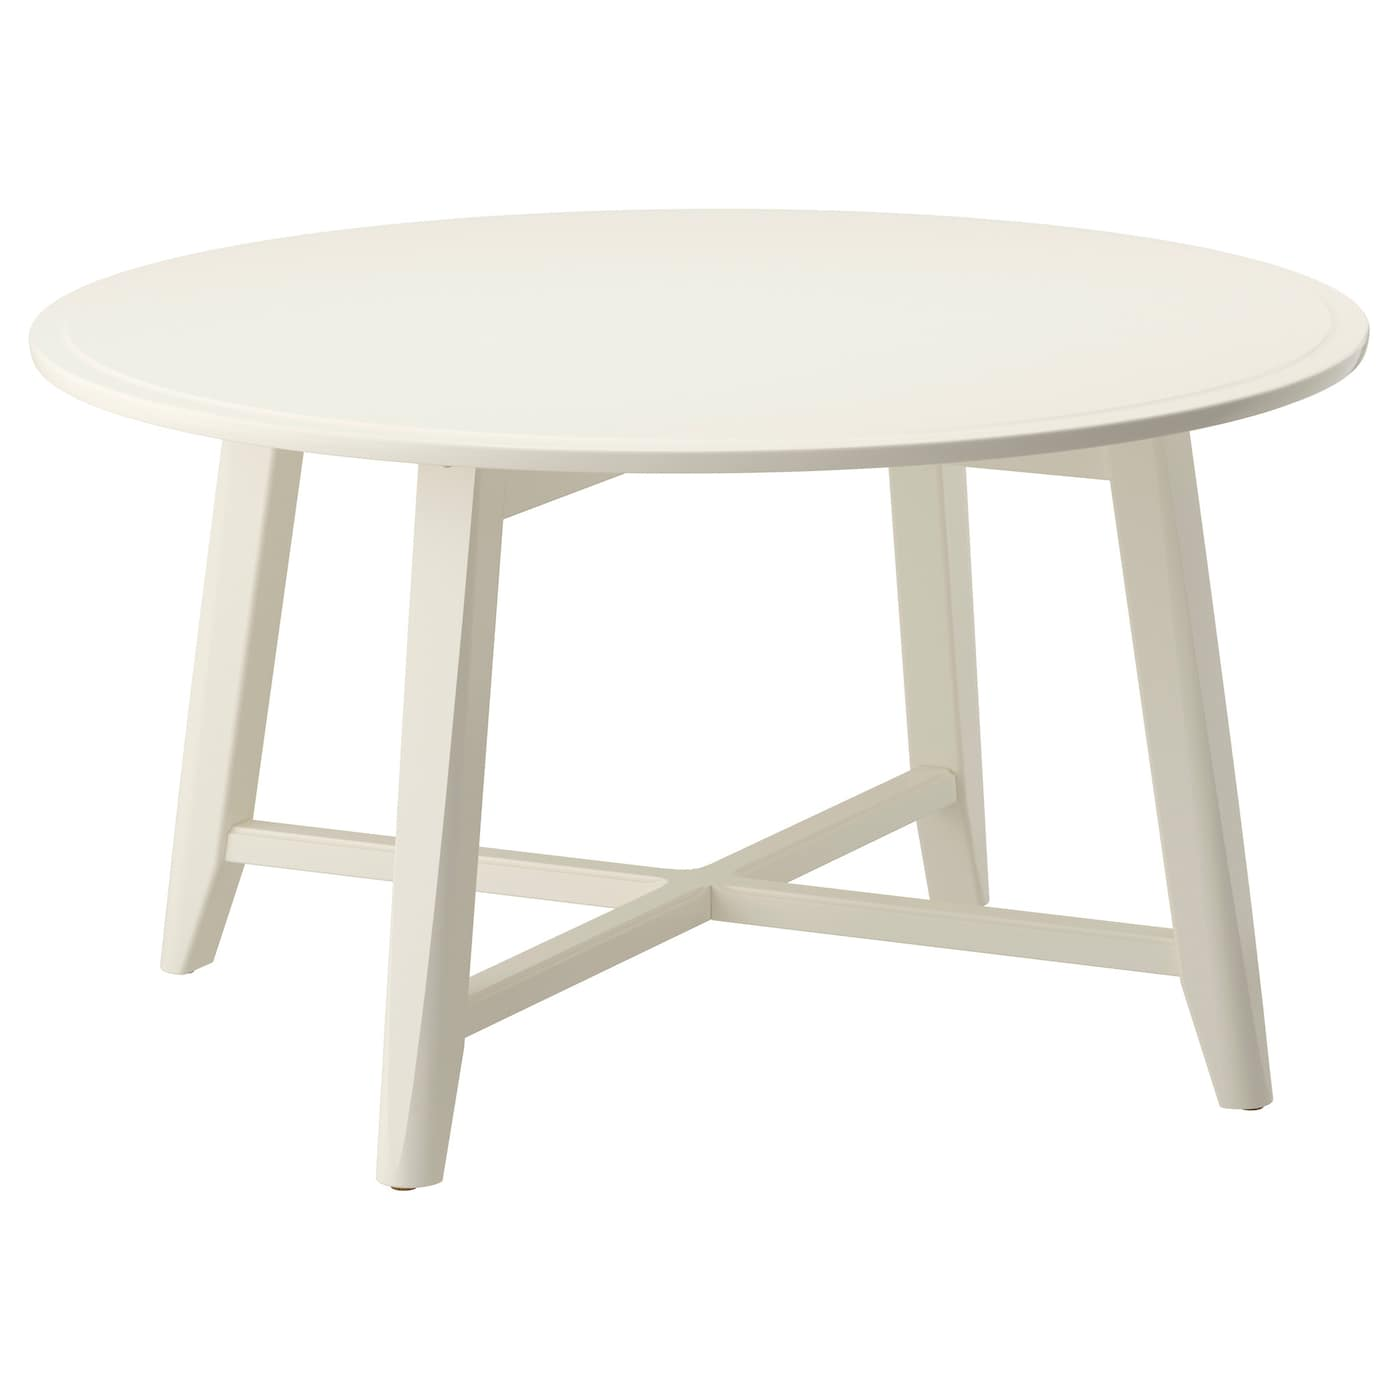 Coffee Side Tables Ikea Ireland Dublin # Table Basse Et Table De Television